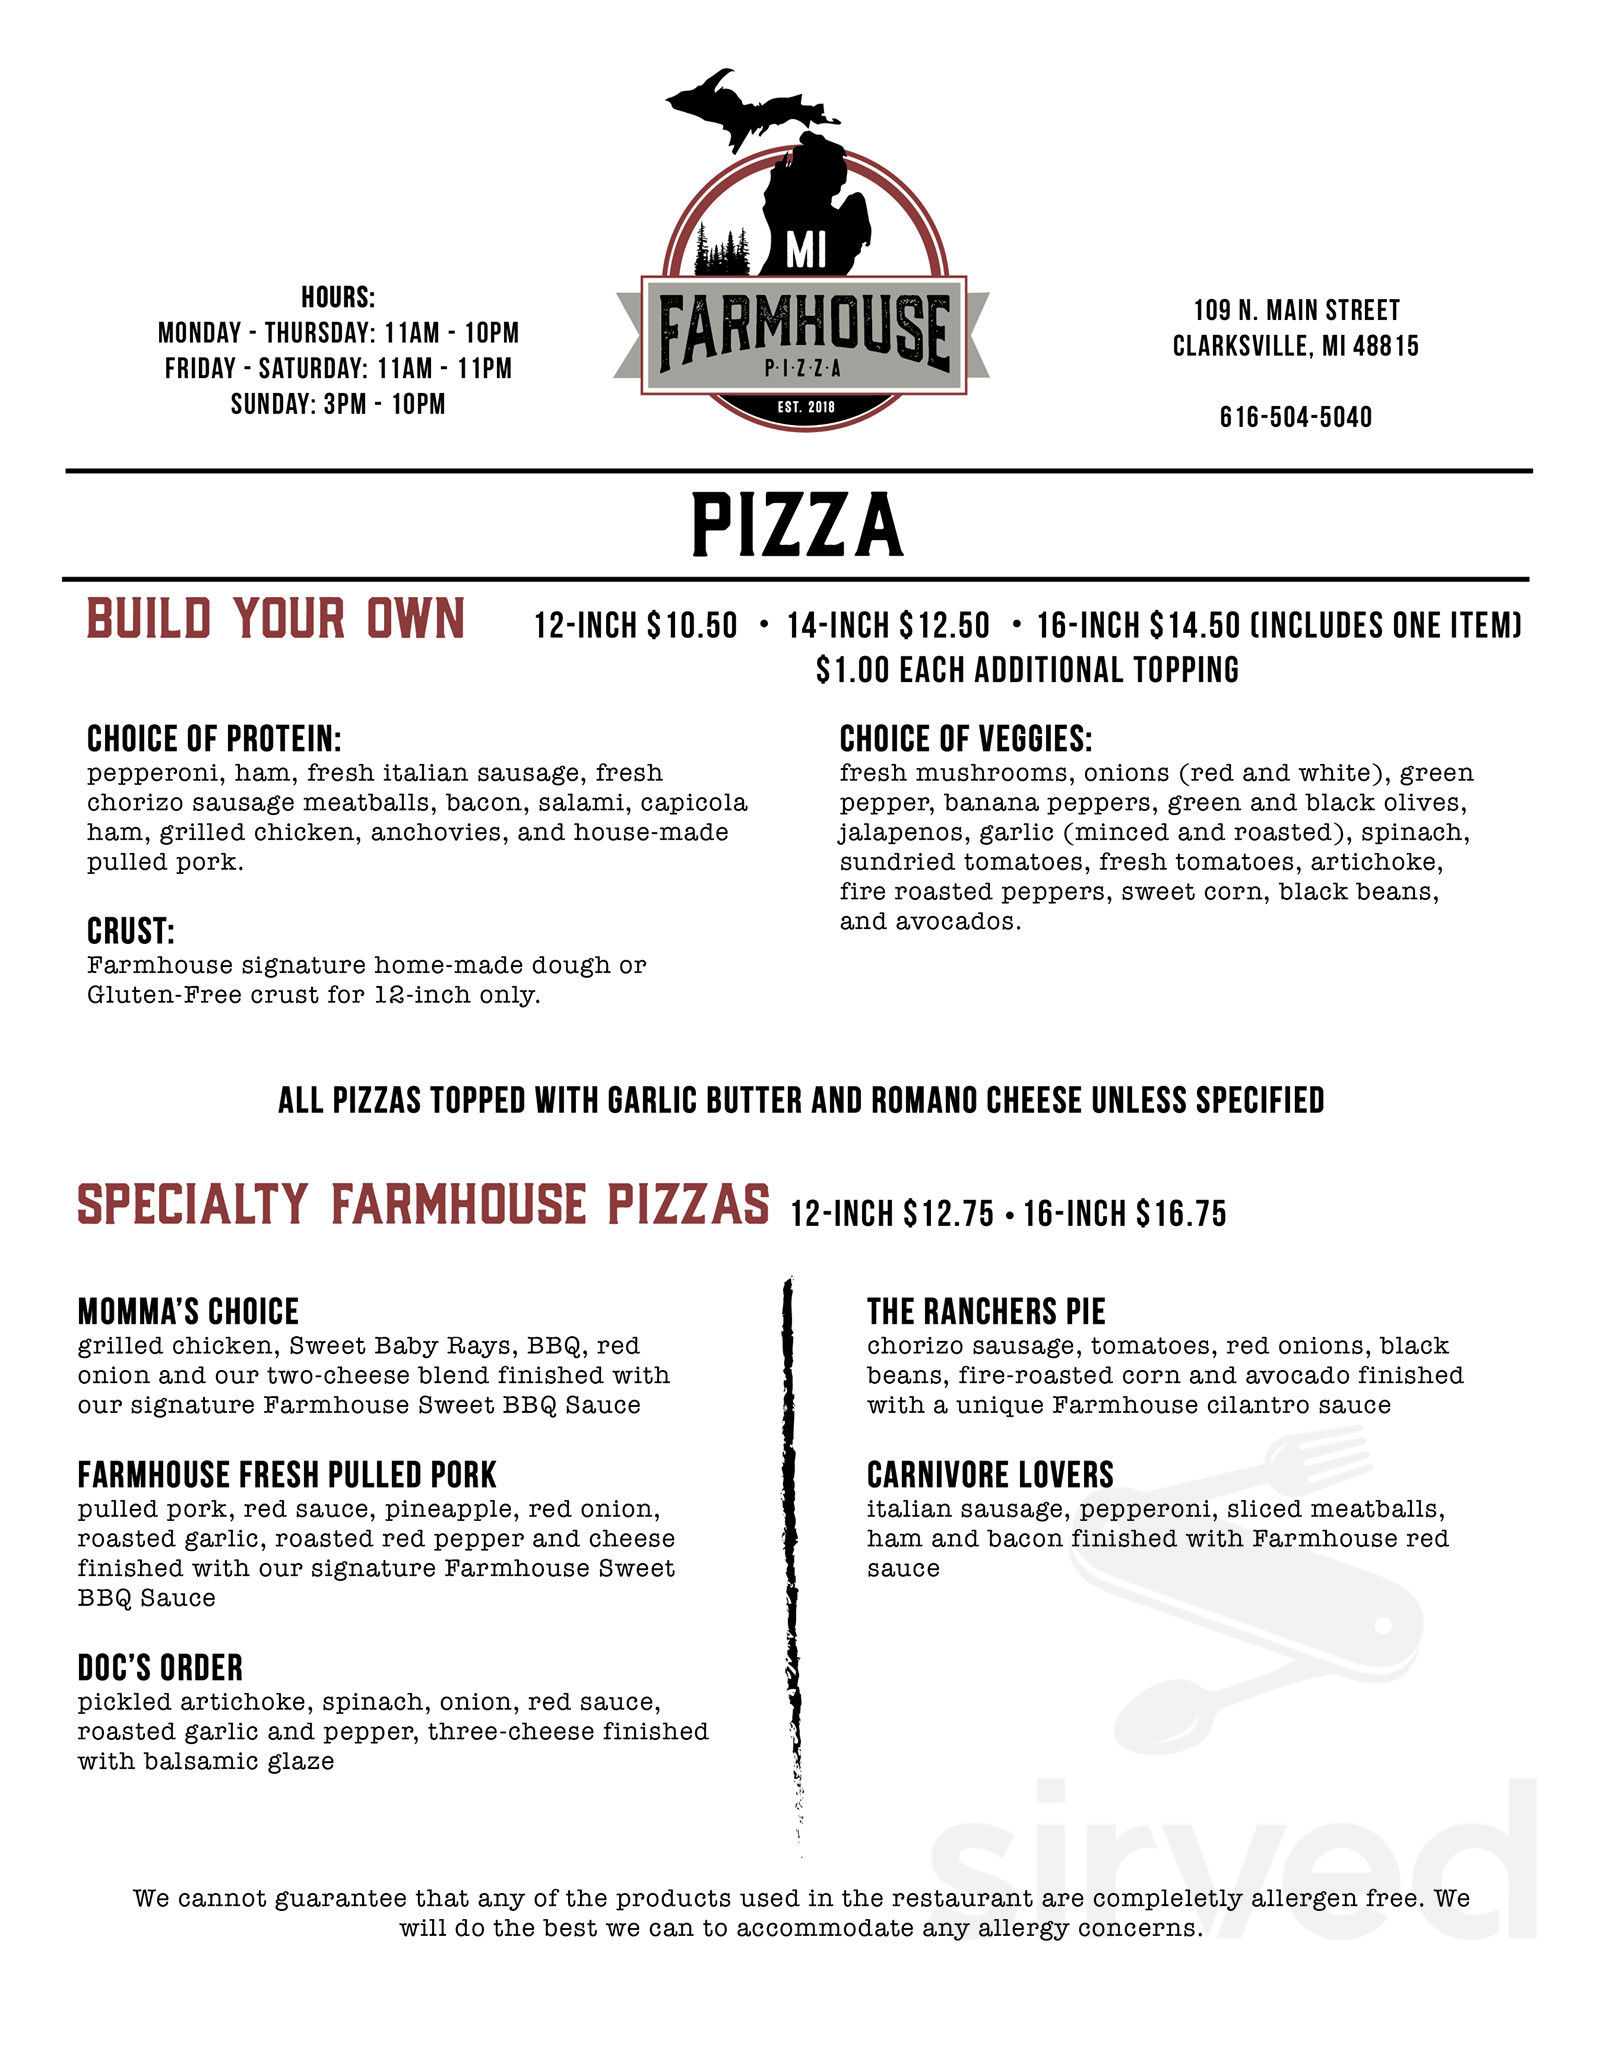 Menu For Michigan Farmhouse Pizza In Clarksville Michigan